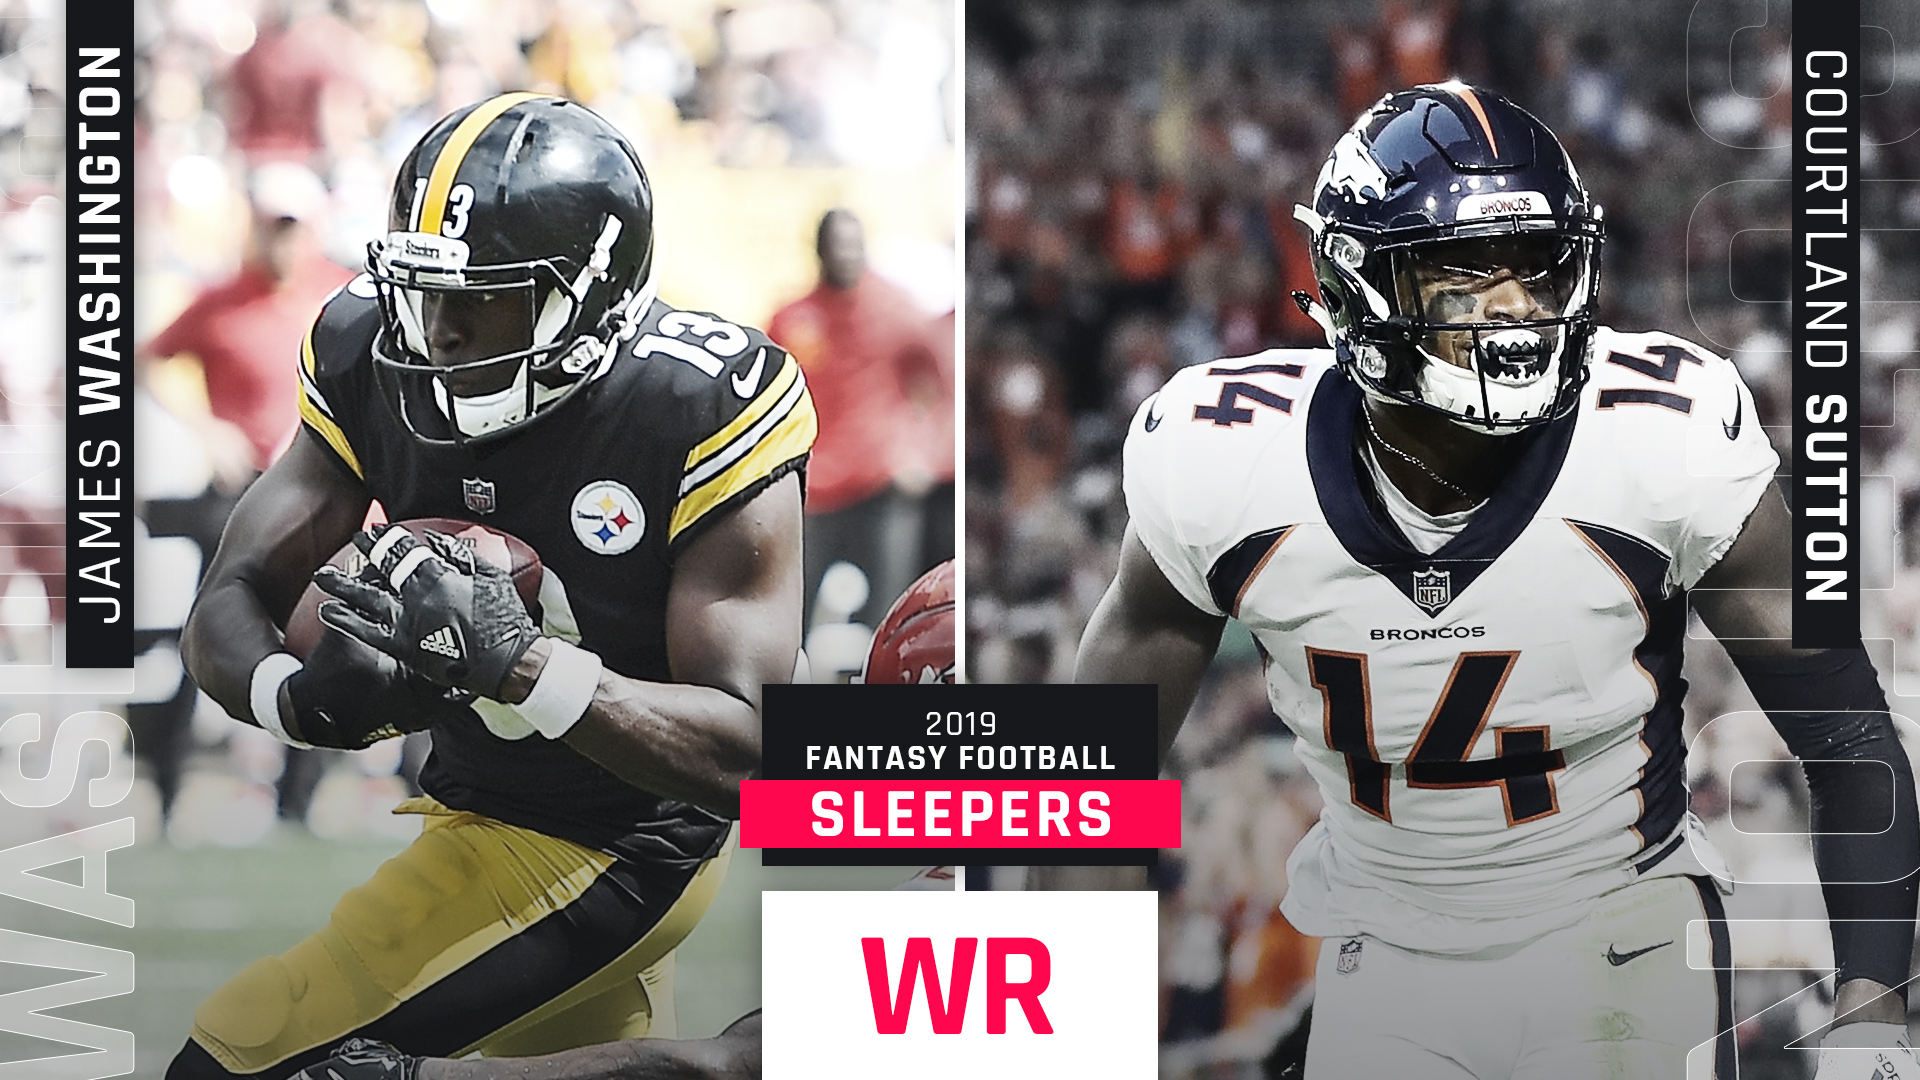 2019 Fantasy WR Sleepers: Top wide receiver breakouts for standard, PPR leagues